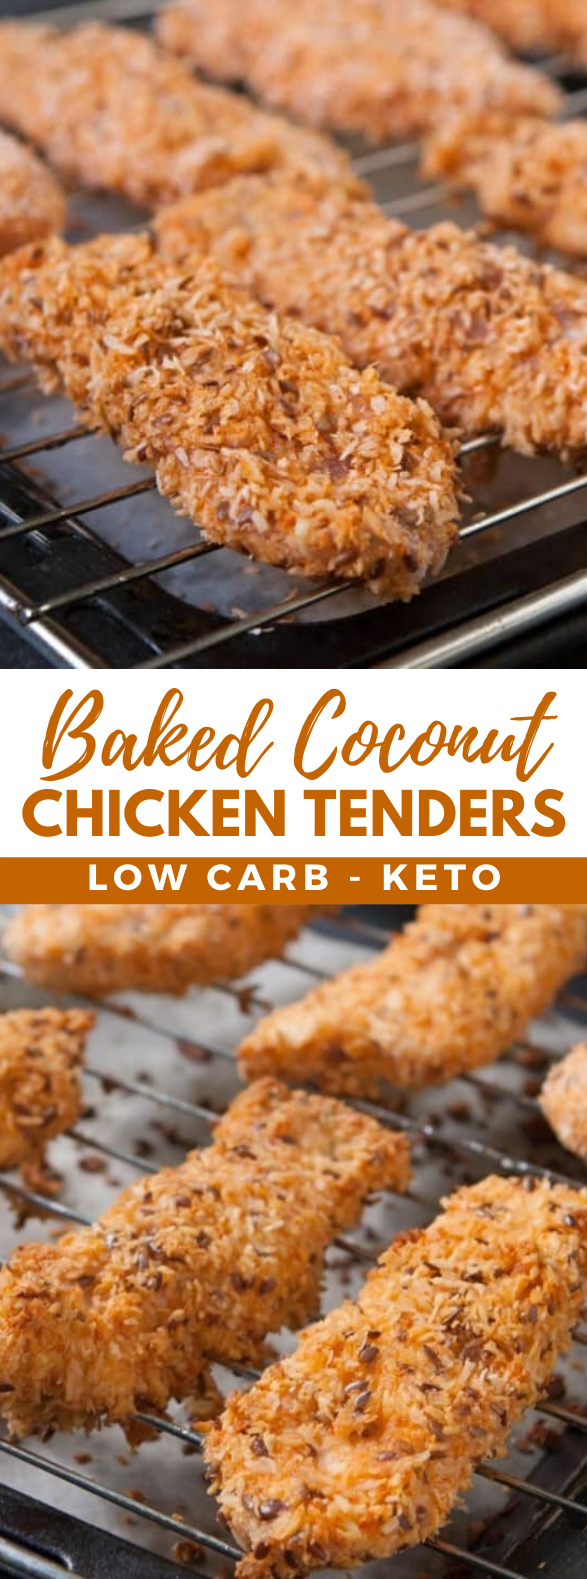 Baked Coconut Chicken Tenders with Flaxseeds #ketofriendly #lunch